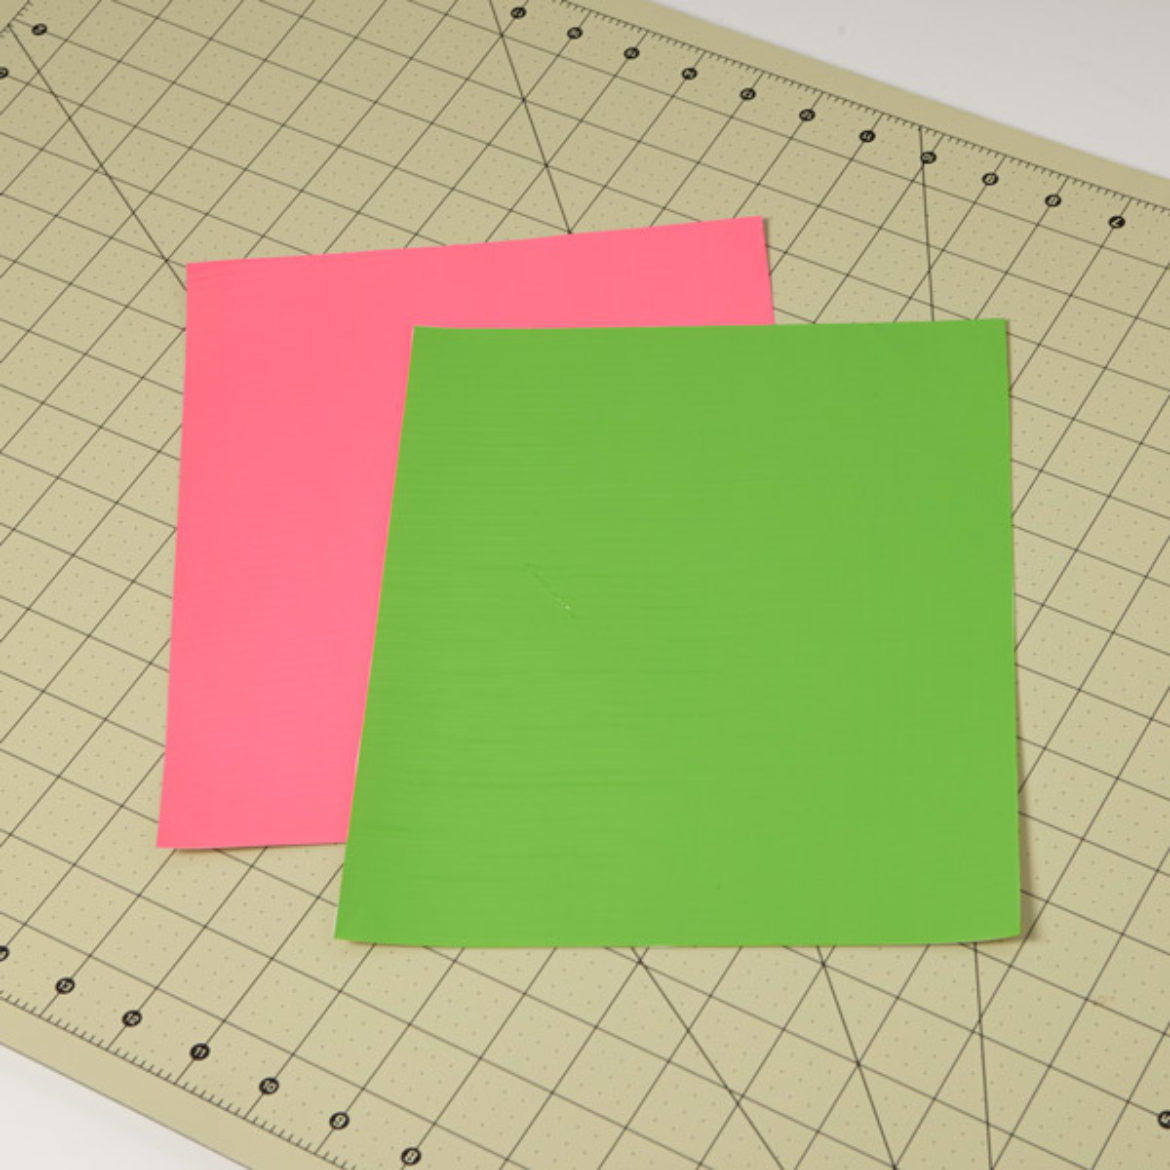 one pink and one green Duck Tape fabric sheet placed on a crafting board